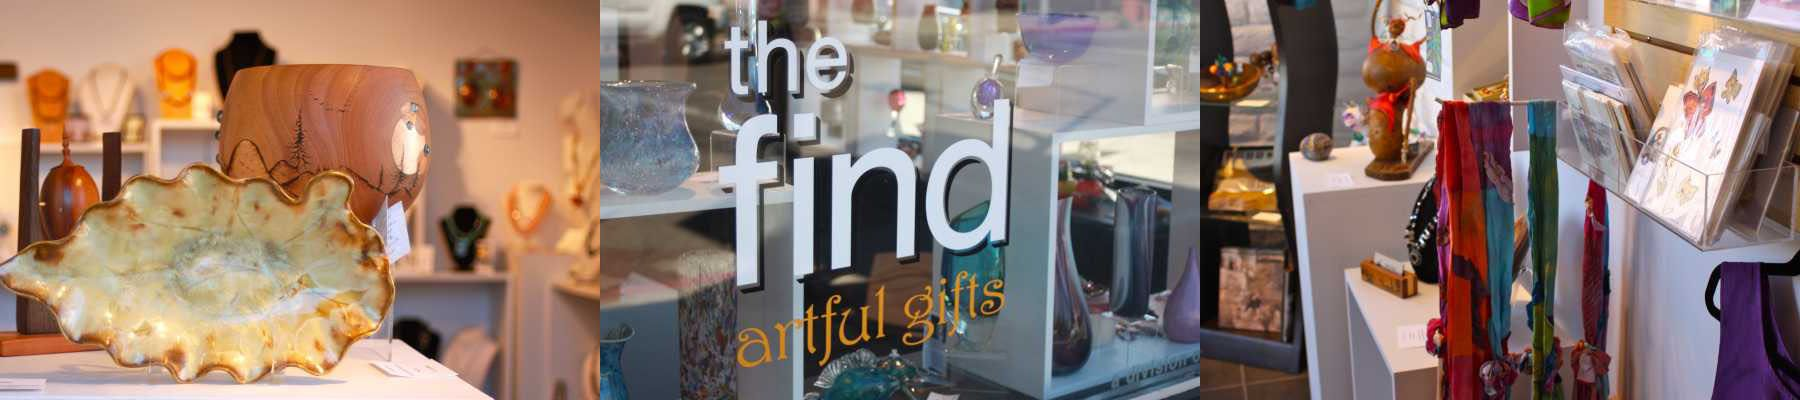 The Find Exhibition Gallery